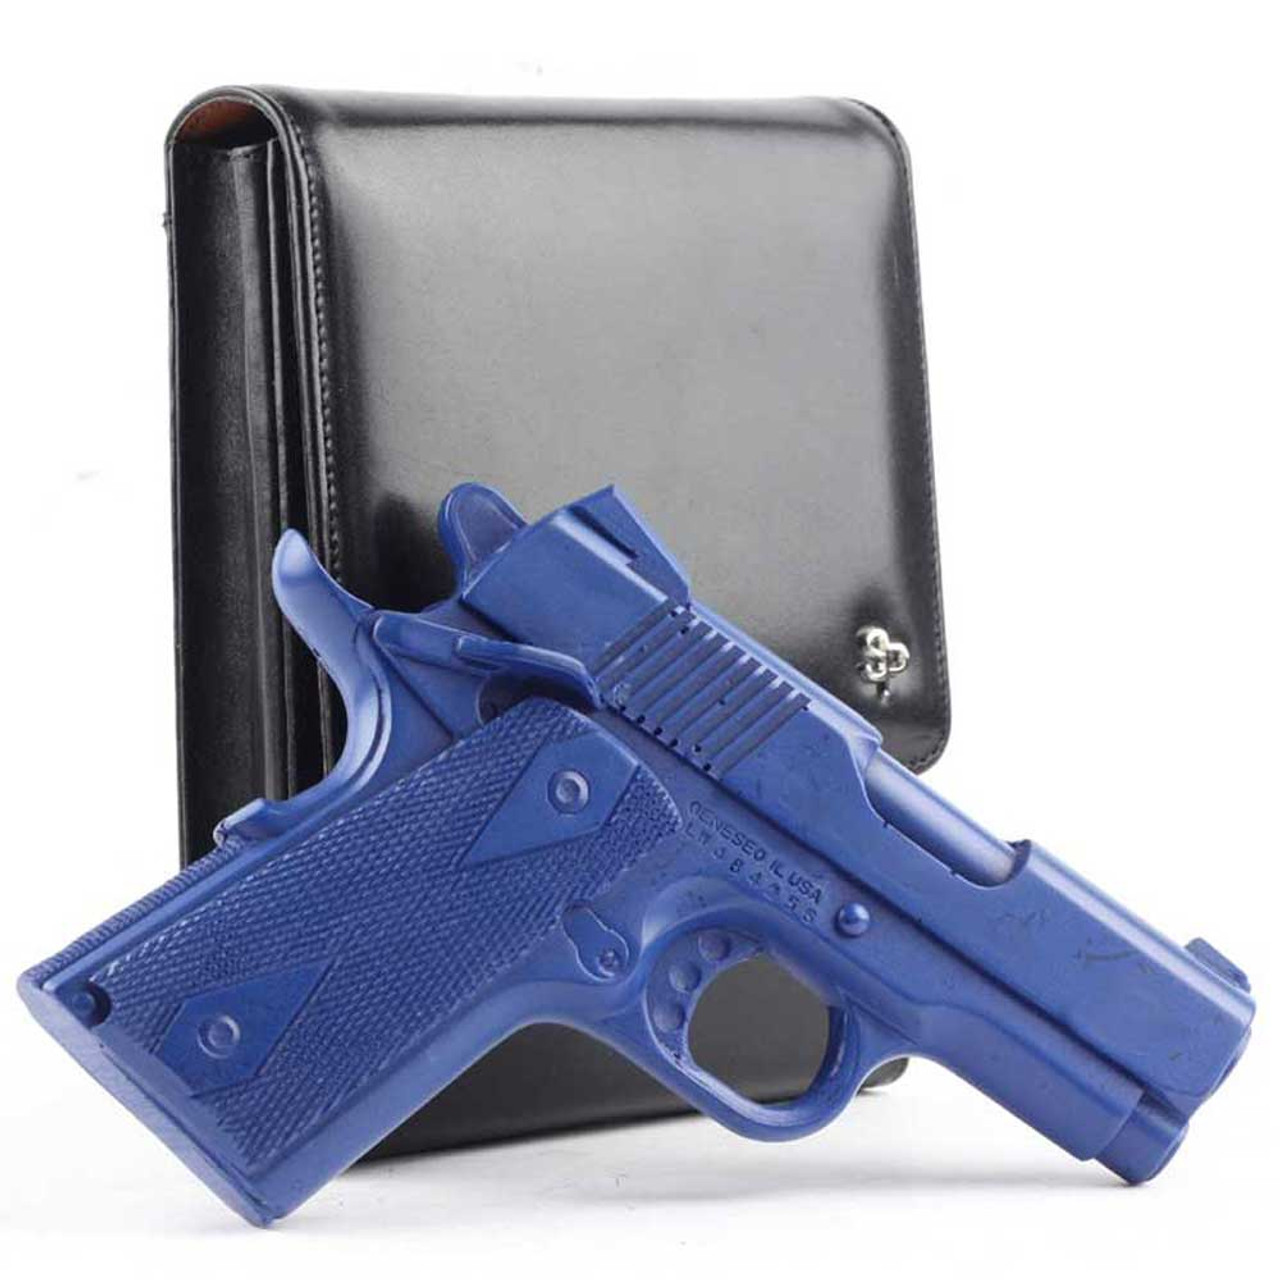 Sig Sauer 1911 Ultra Compact Concealed Carry Holster (Belt Loop)